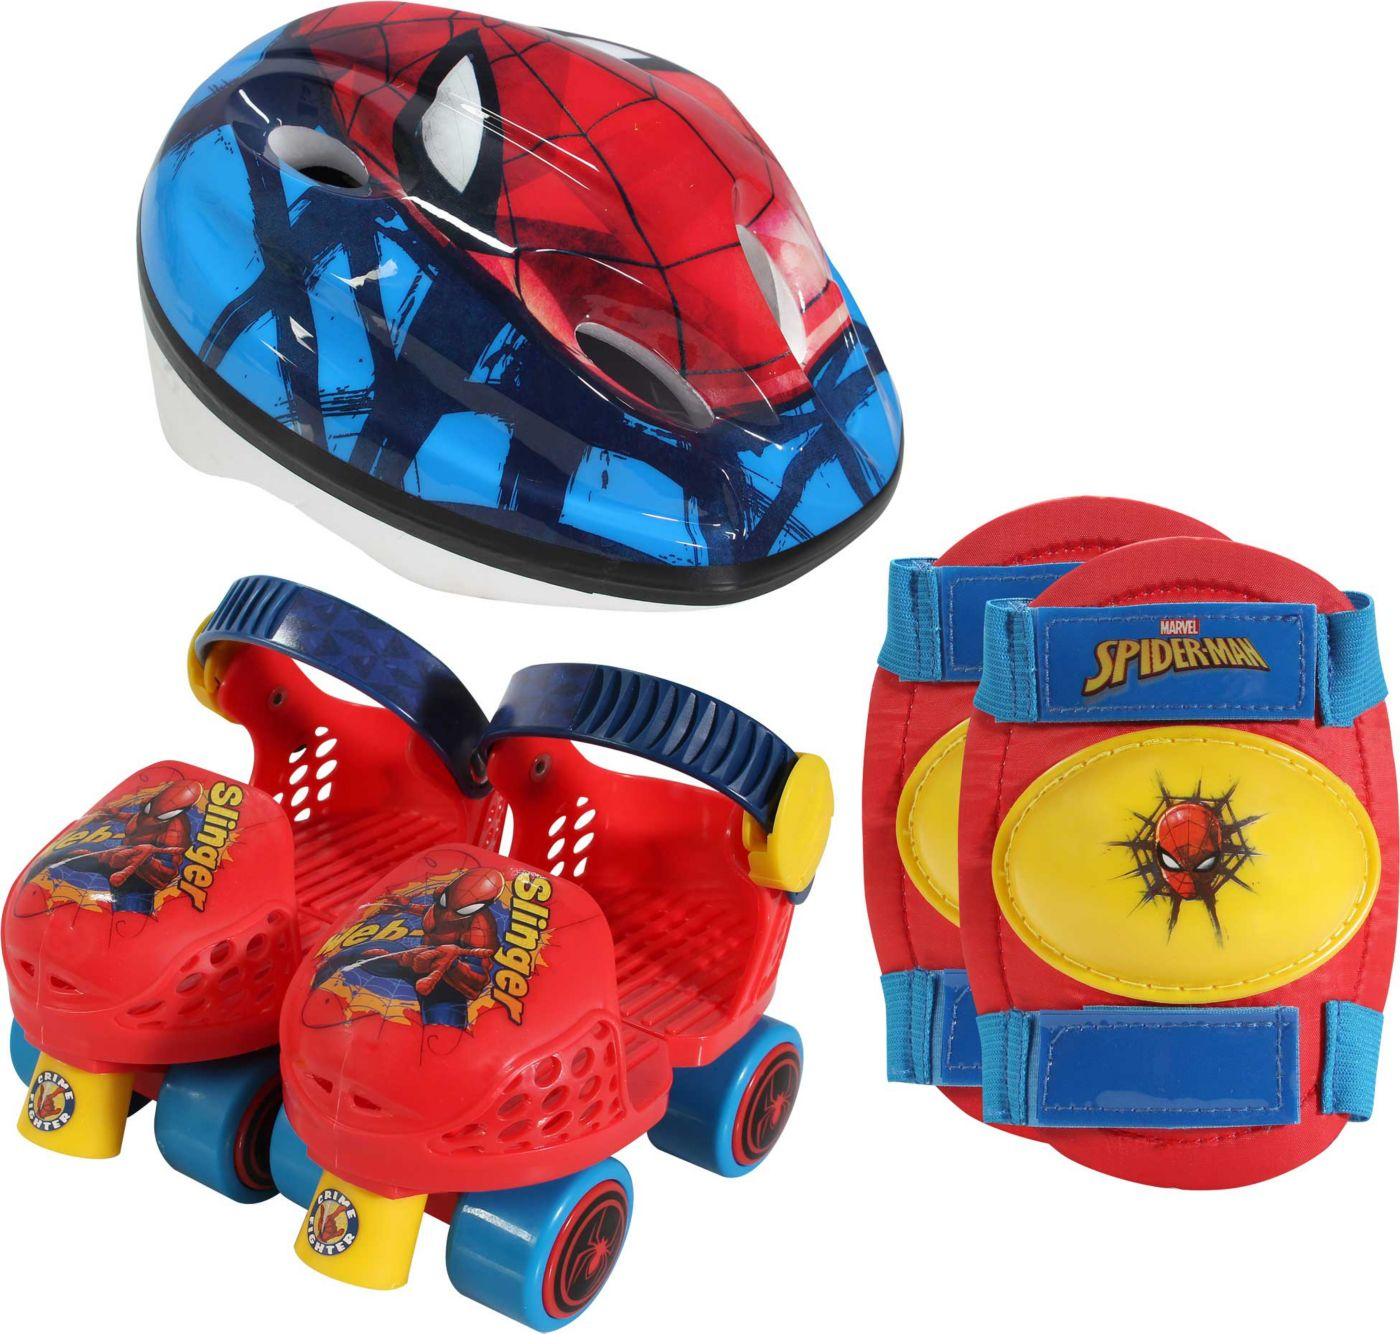 Playwheels Boys' Spider-Man Roller Skate Combo Set